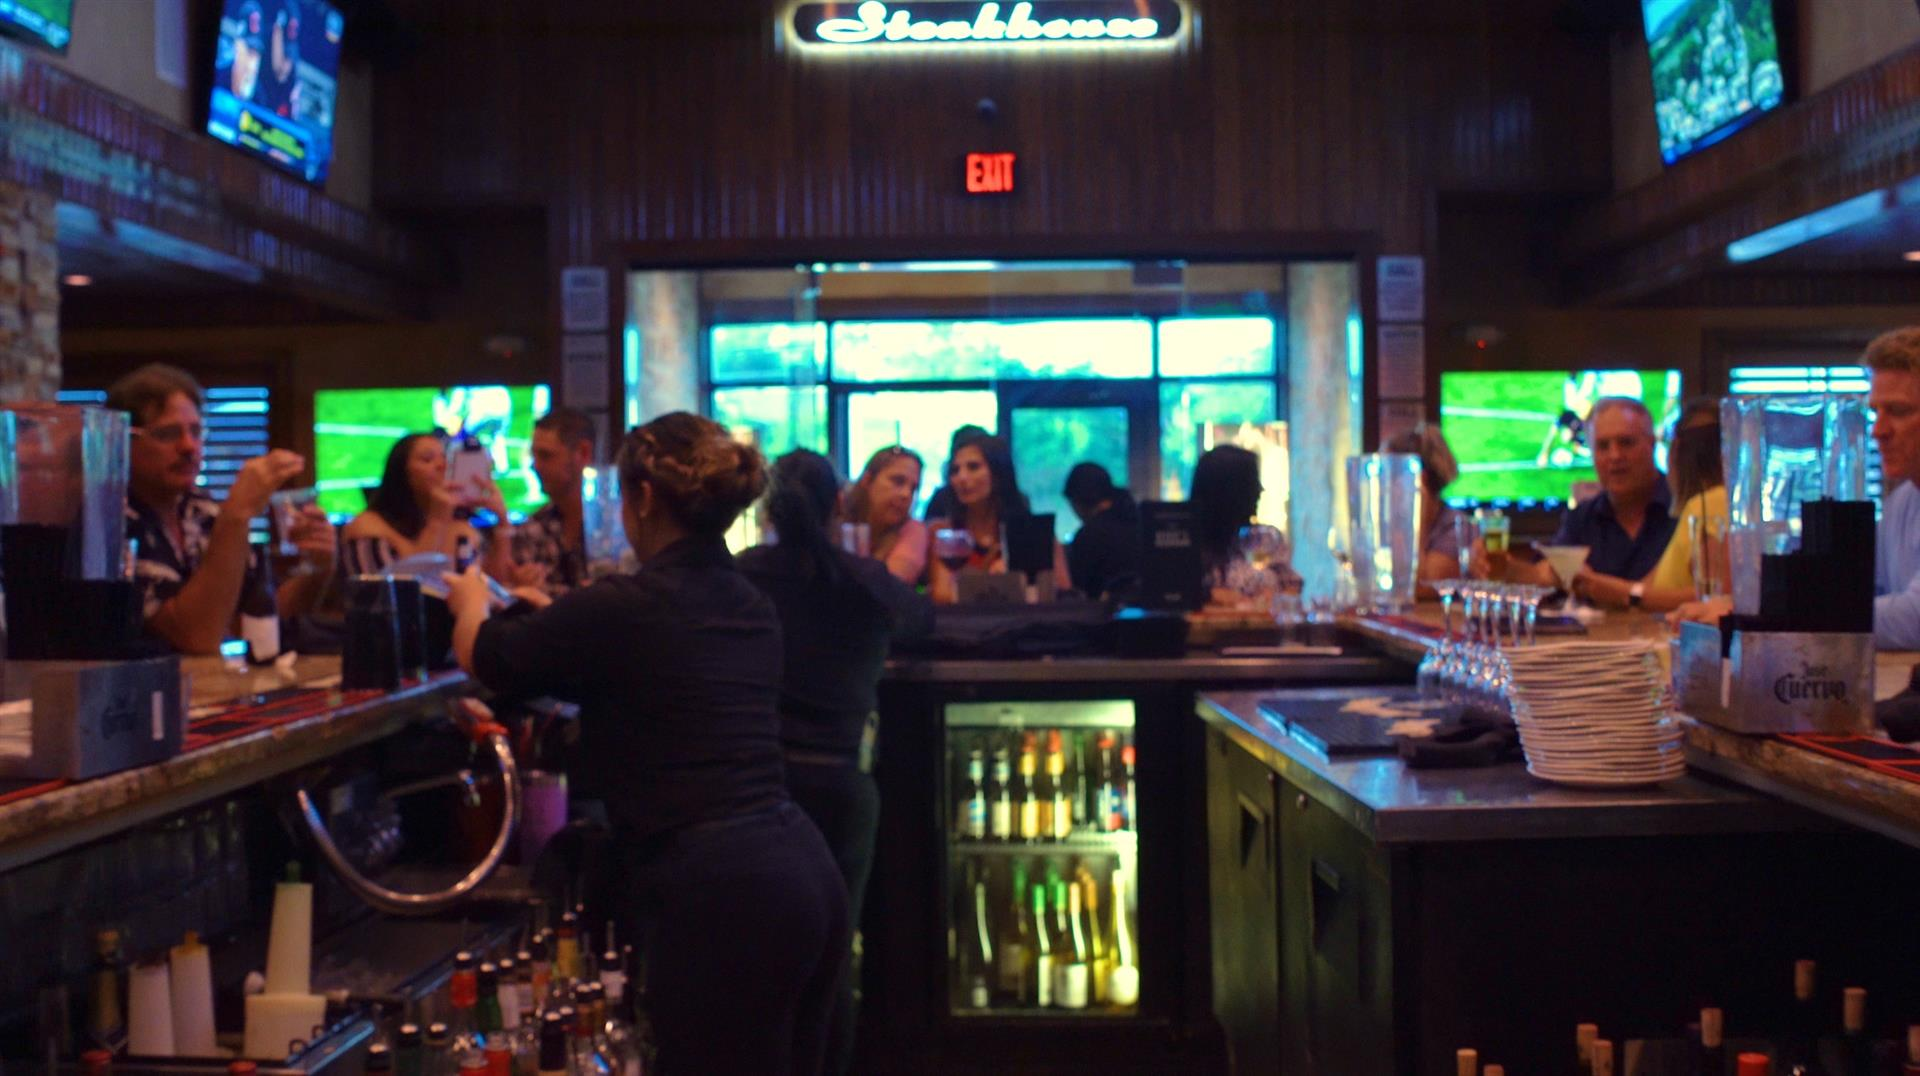 crowded bar filled with patrons and bartenders filling glasses